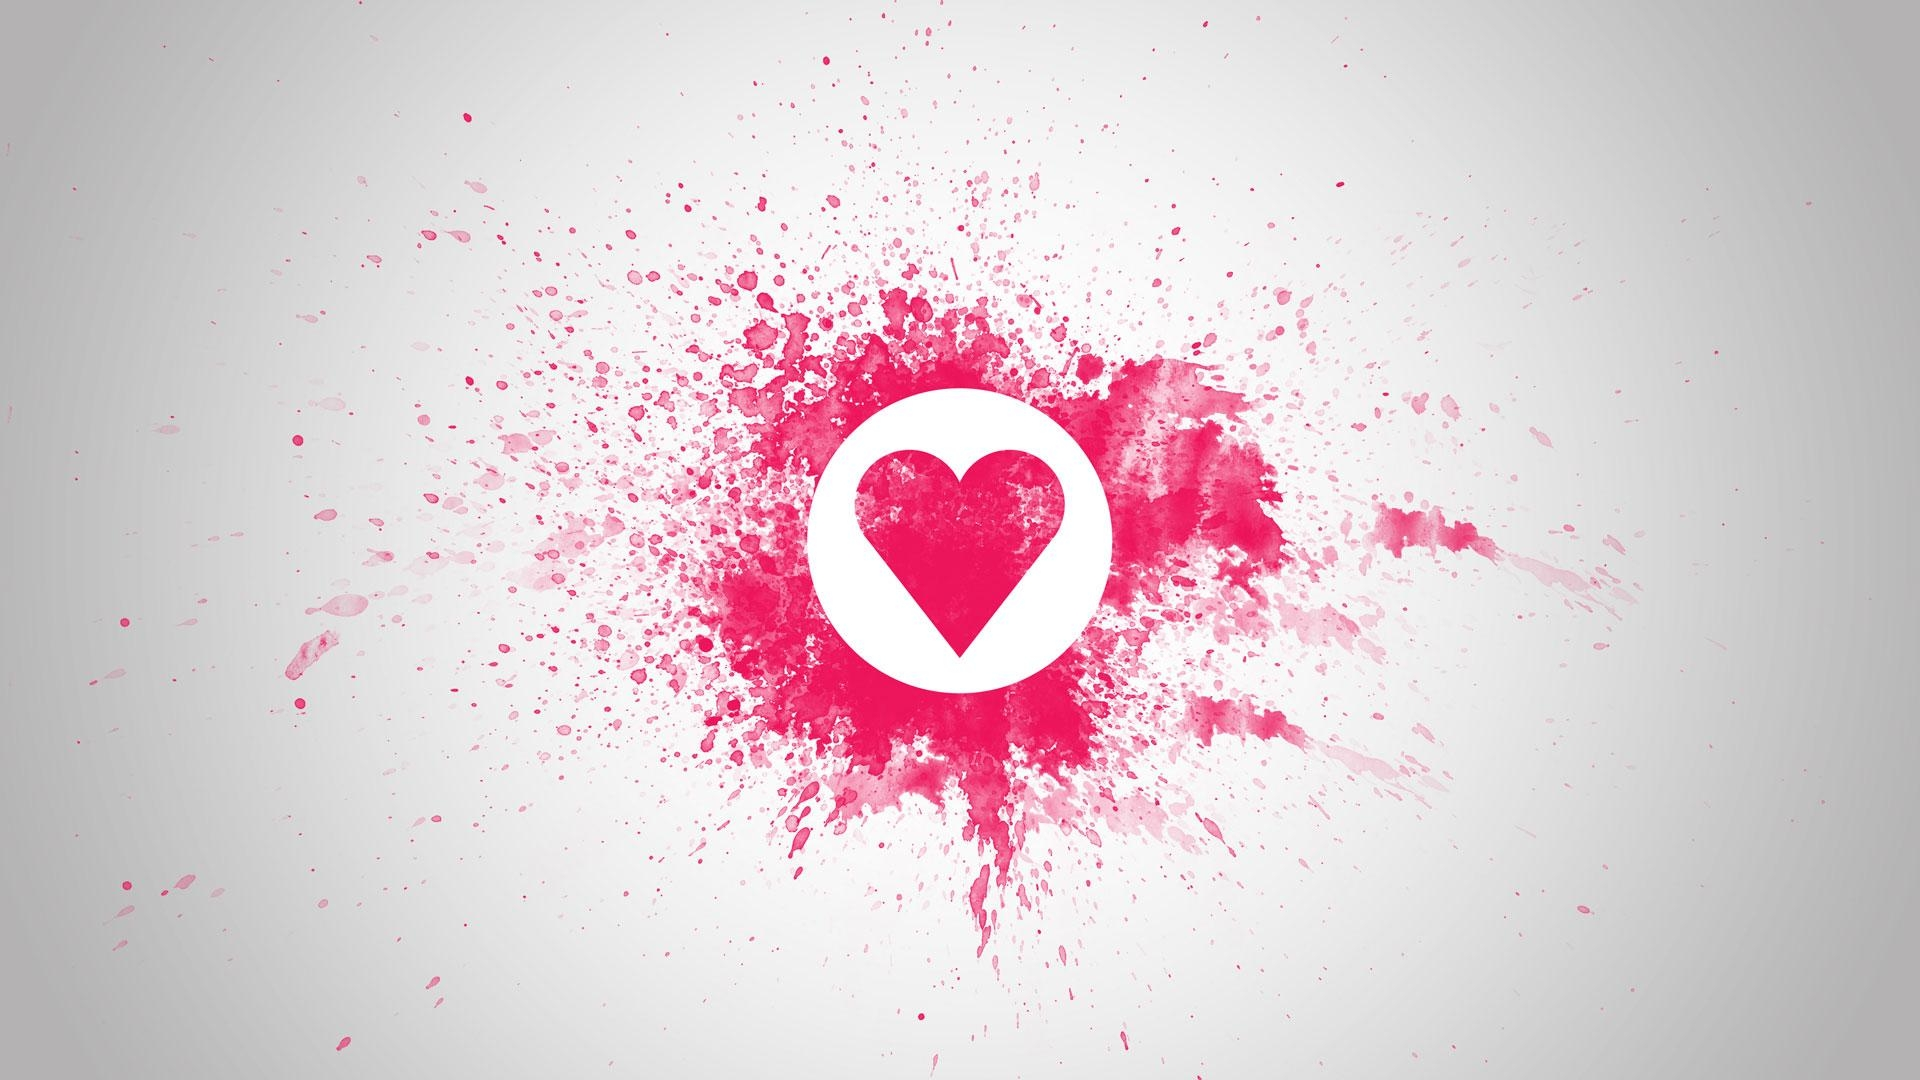 Love Wall Art Pink Red Desktop Background Wallpaper (1080P) – Hd Image Inside Love Wall Art (Image 12 of 20)